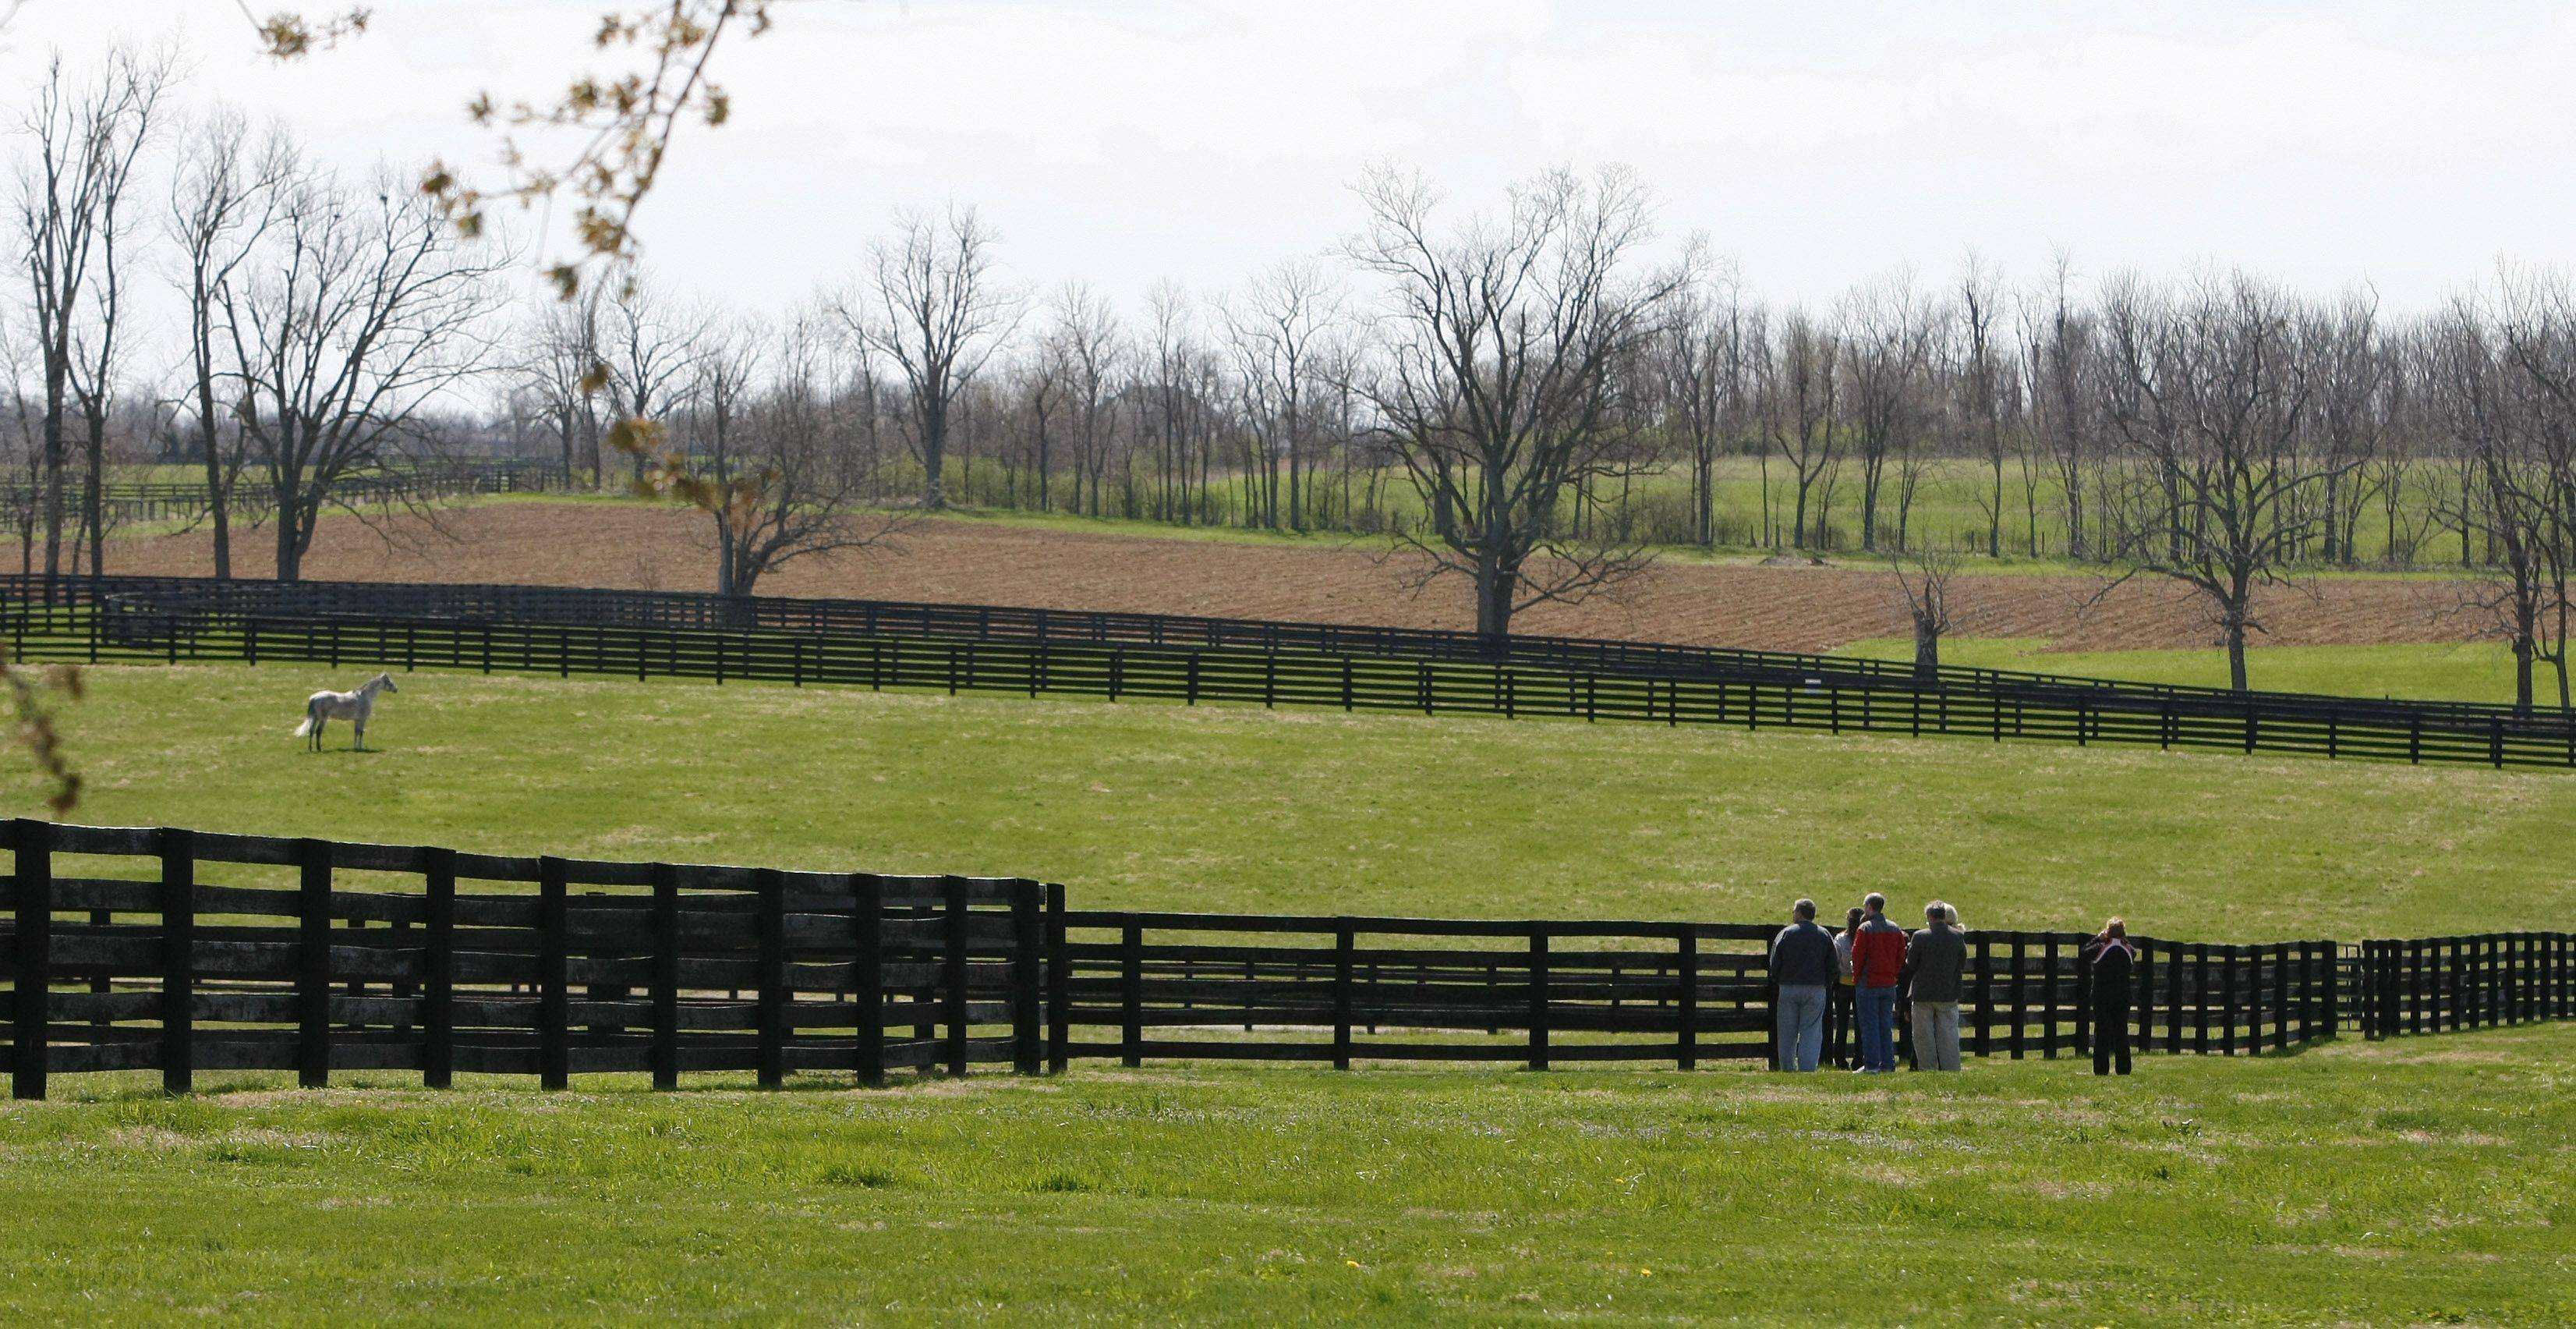 A tour group stands along a fence to view Exchange Rate in a paddock at the Three Chimneys Farm in Midway, Ky. Sleek thoroughbreds are the stars in Kentucky's bluegrass region.